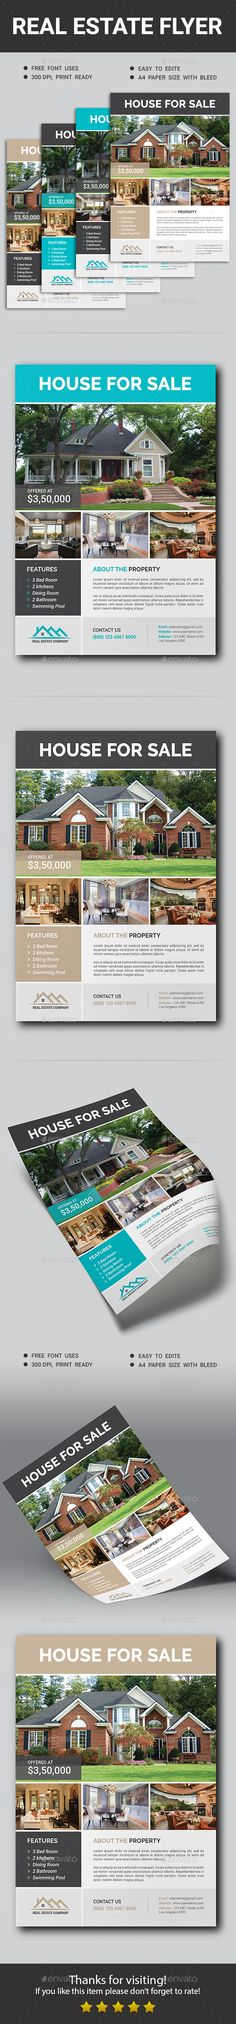 Real Estate Flyer Templates Corporate Flyers Download Here - Photoshop real estate flyer templates